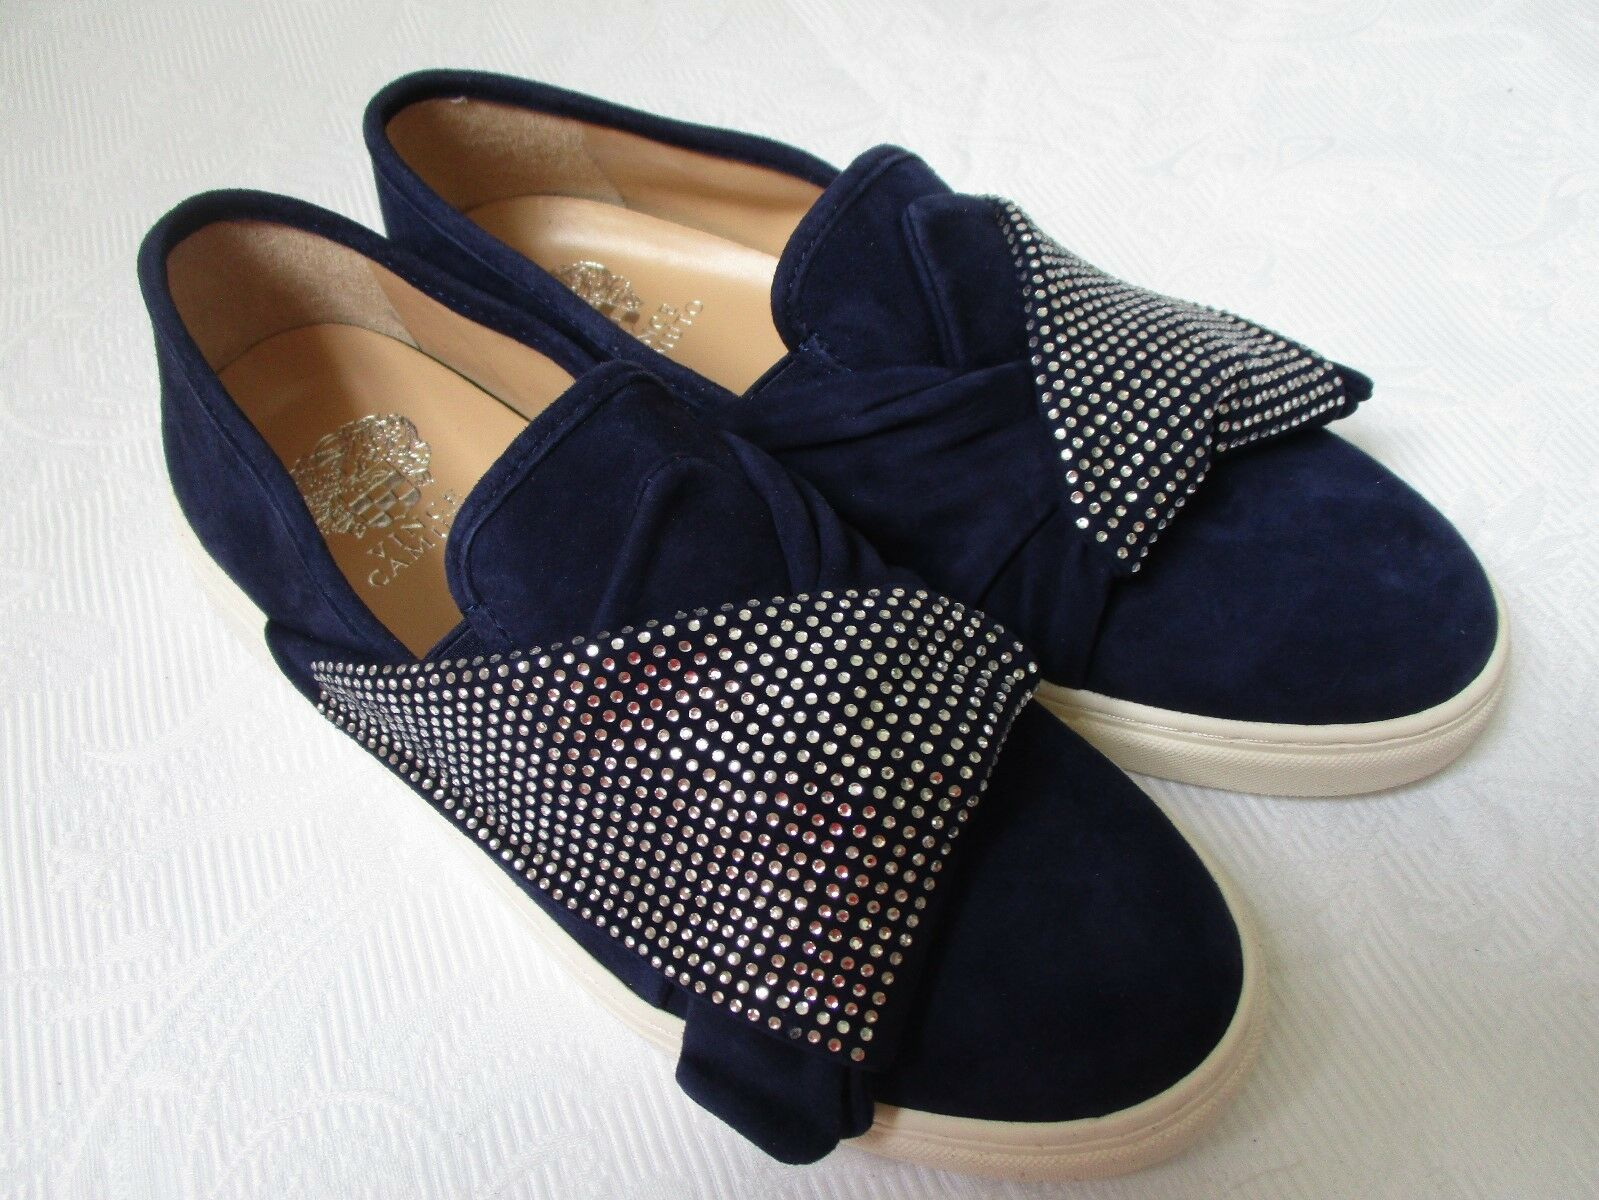 VINCE CAMUTO BARITA blueE SUEDE RHINESTONE SNEAKERS SIZE 6 6 6 M - NEW 6d763d